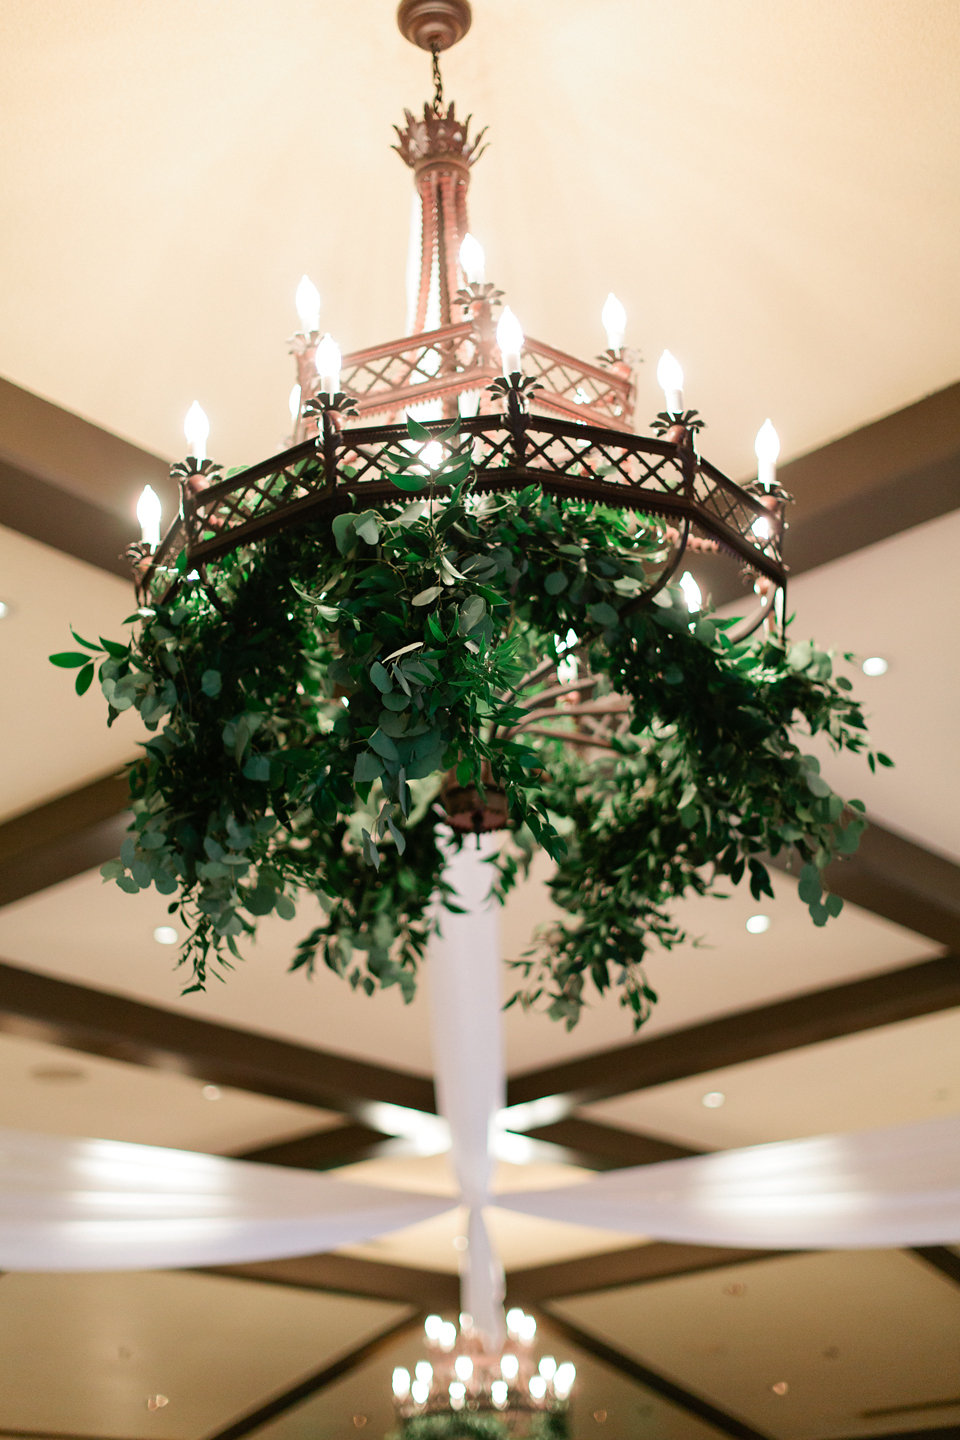 Chandelier with greenery and draping at TPC Sawgrass Clubhouse  Blush Wedding at TPC Sawgrass Wedding Ponte Vedra Beach  Jacksonville Wedding Planner Blue Ribbon Weddings  Jacksonville Wedding Photographer Debra Eby Photography  Wedding Ceremony & Reception at TPC Sawgrass Jacksonville